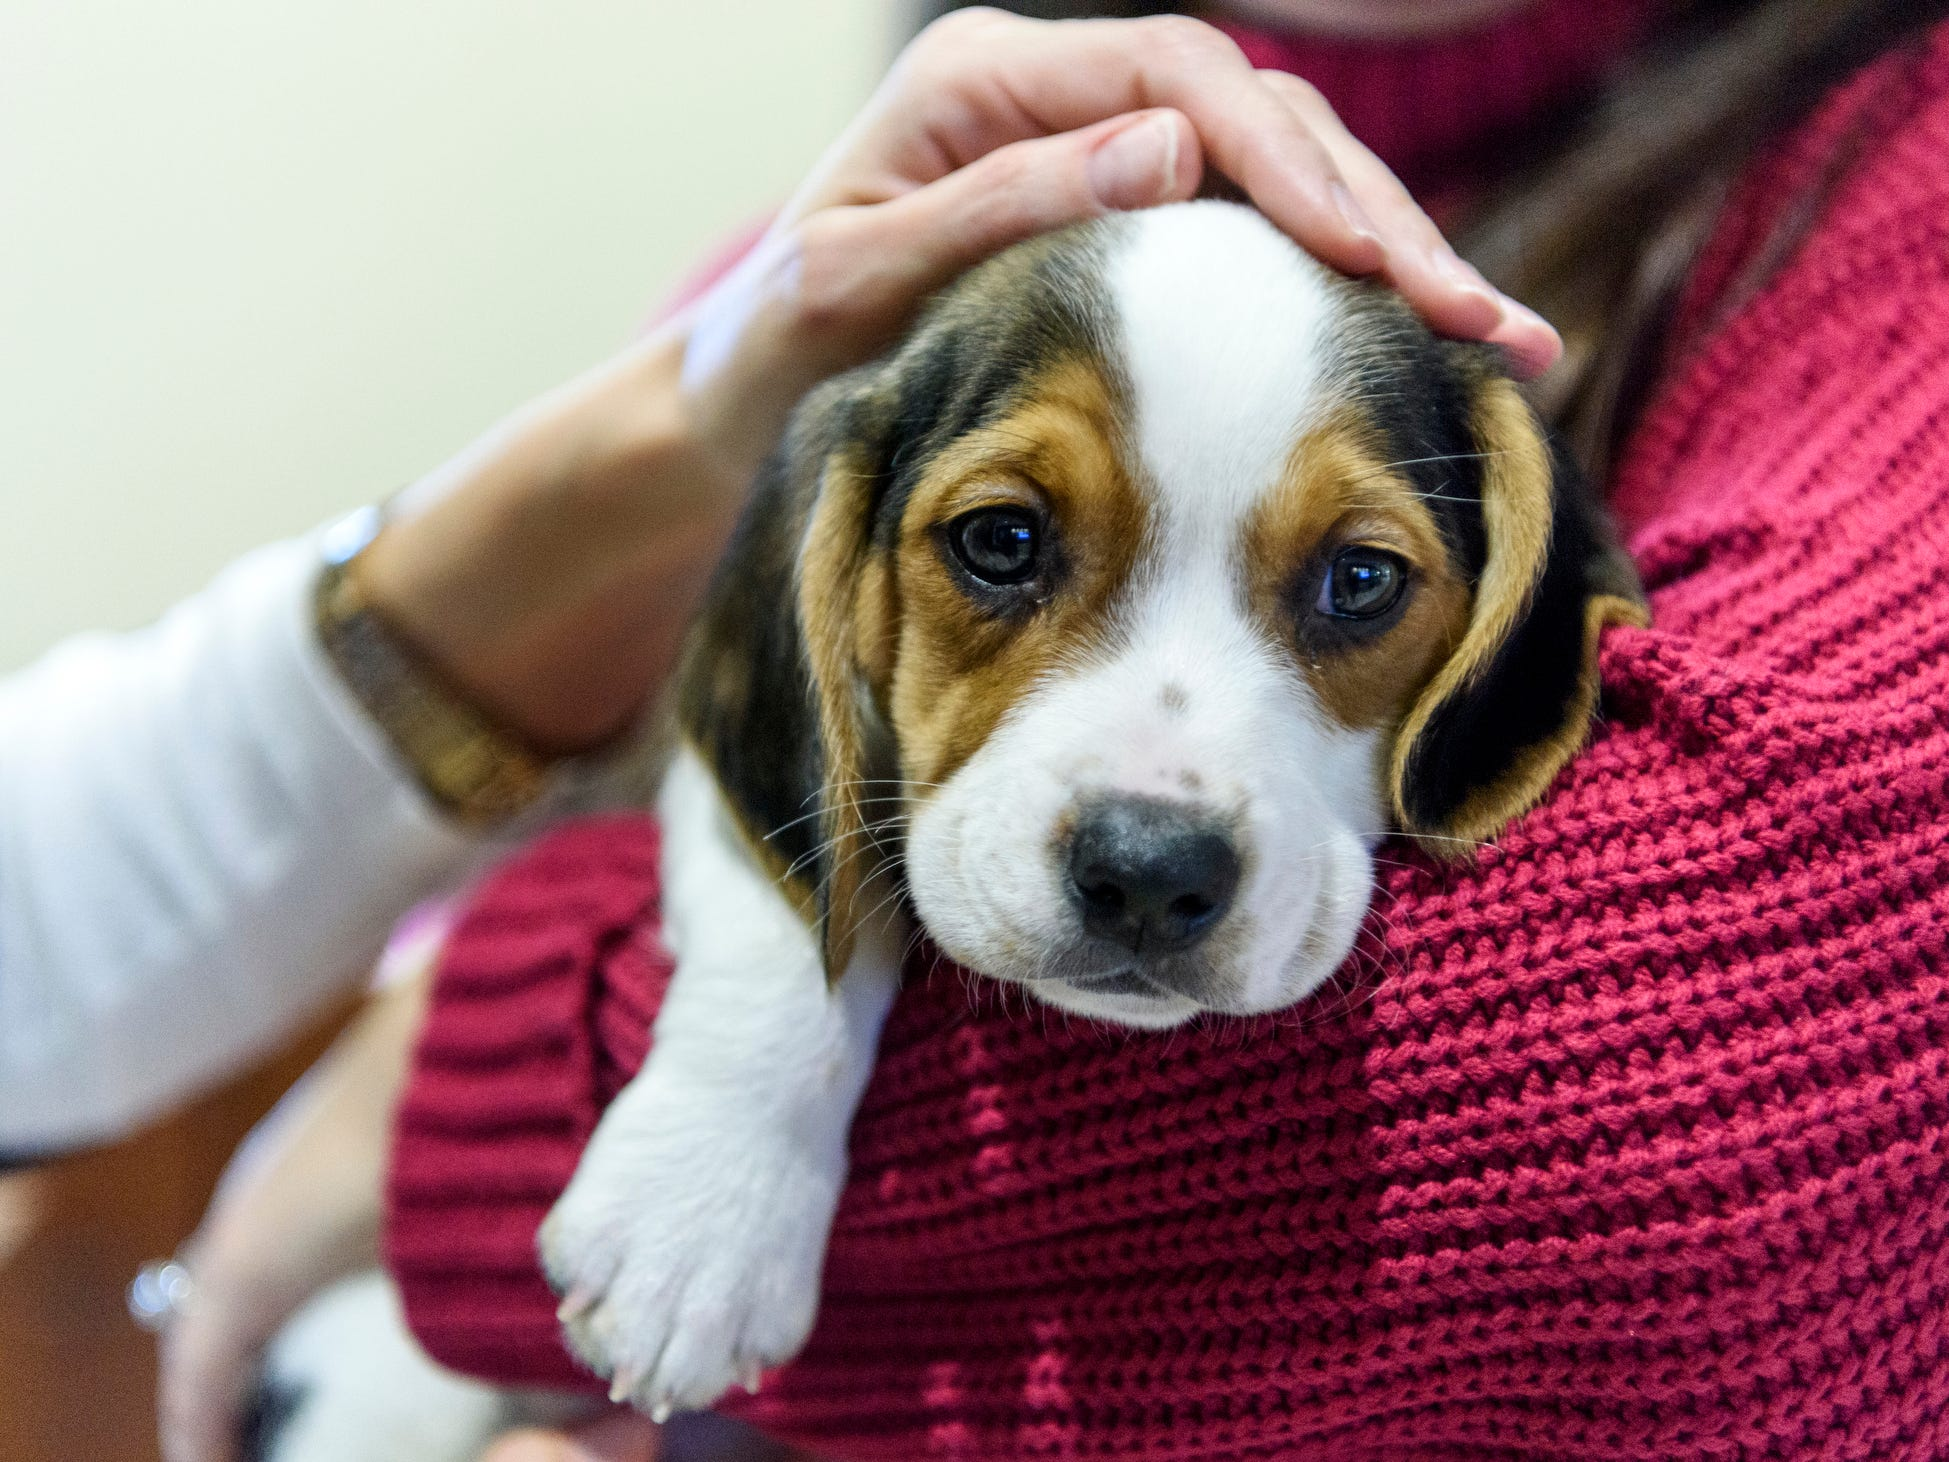 Prince, an eight-week-old Beagle puppy, receives love from multiple Evansville Federal Credit Union employees, Thursday, Feb. 14, 2019. He was delivered to the bank for a 30-minute snuggle session through the Vanderburgh Humane Society's Cuddlegram program.